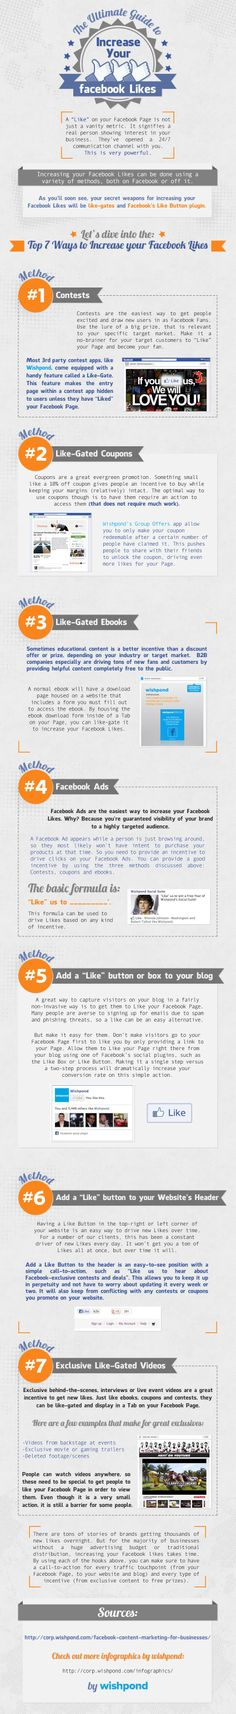 get more facebook likes 7 Ways to Get More Facebook Likes [Infographic]